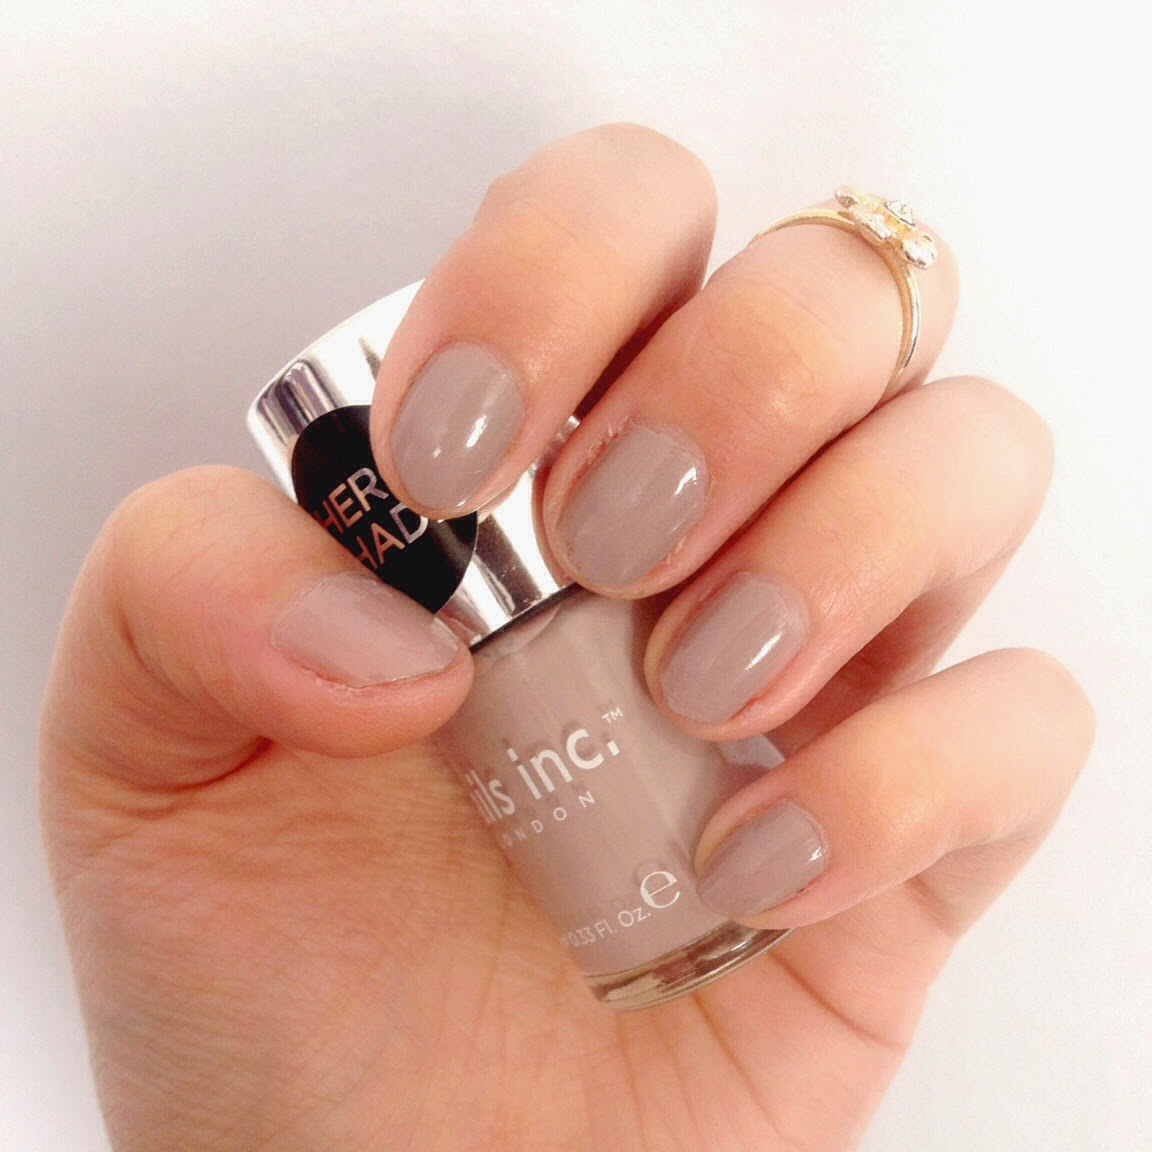 Inspire Magazine Online - UK Fashion, Beauty & Lifestyle blog - Nails Of The Day // Nails Inc. 'Hero Shade'; Inspire Magazine Online; Nails Of The Week; NOTW; Hero Shade; Nails Inc.